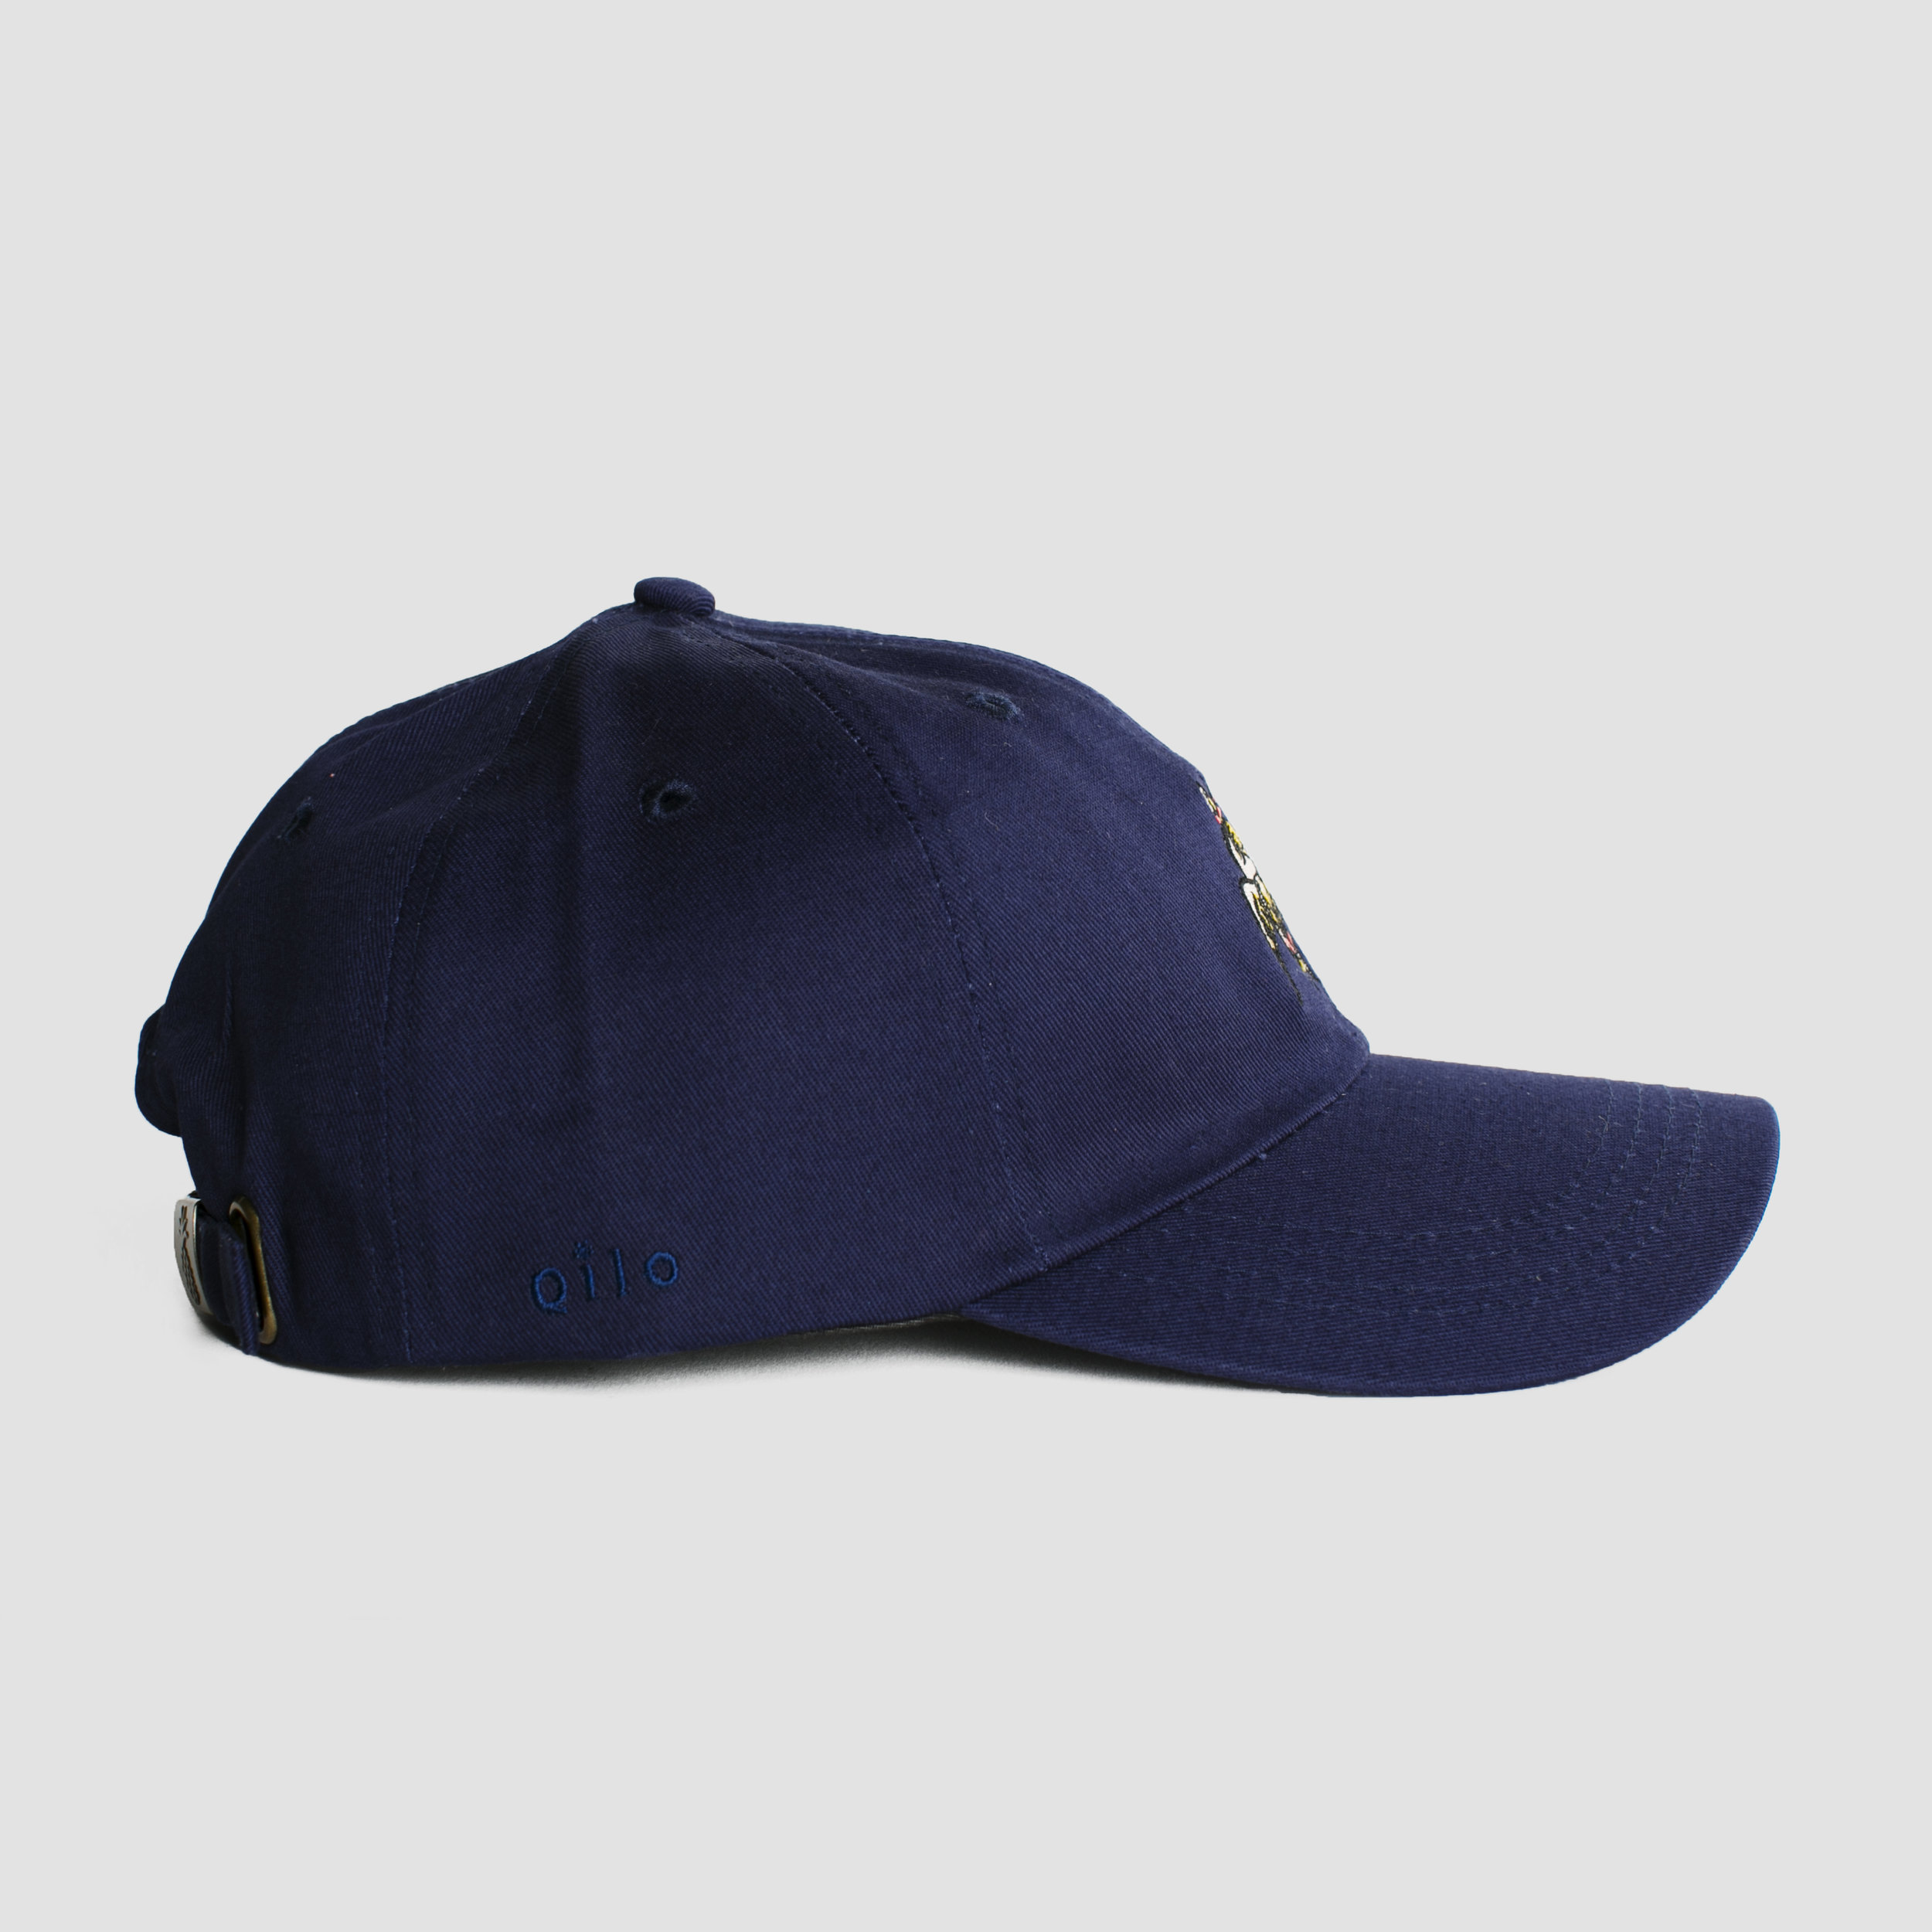 Seraphim Cap in Royal Navy — Apostle Club